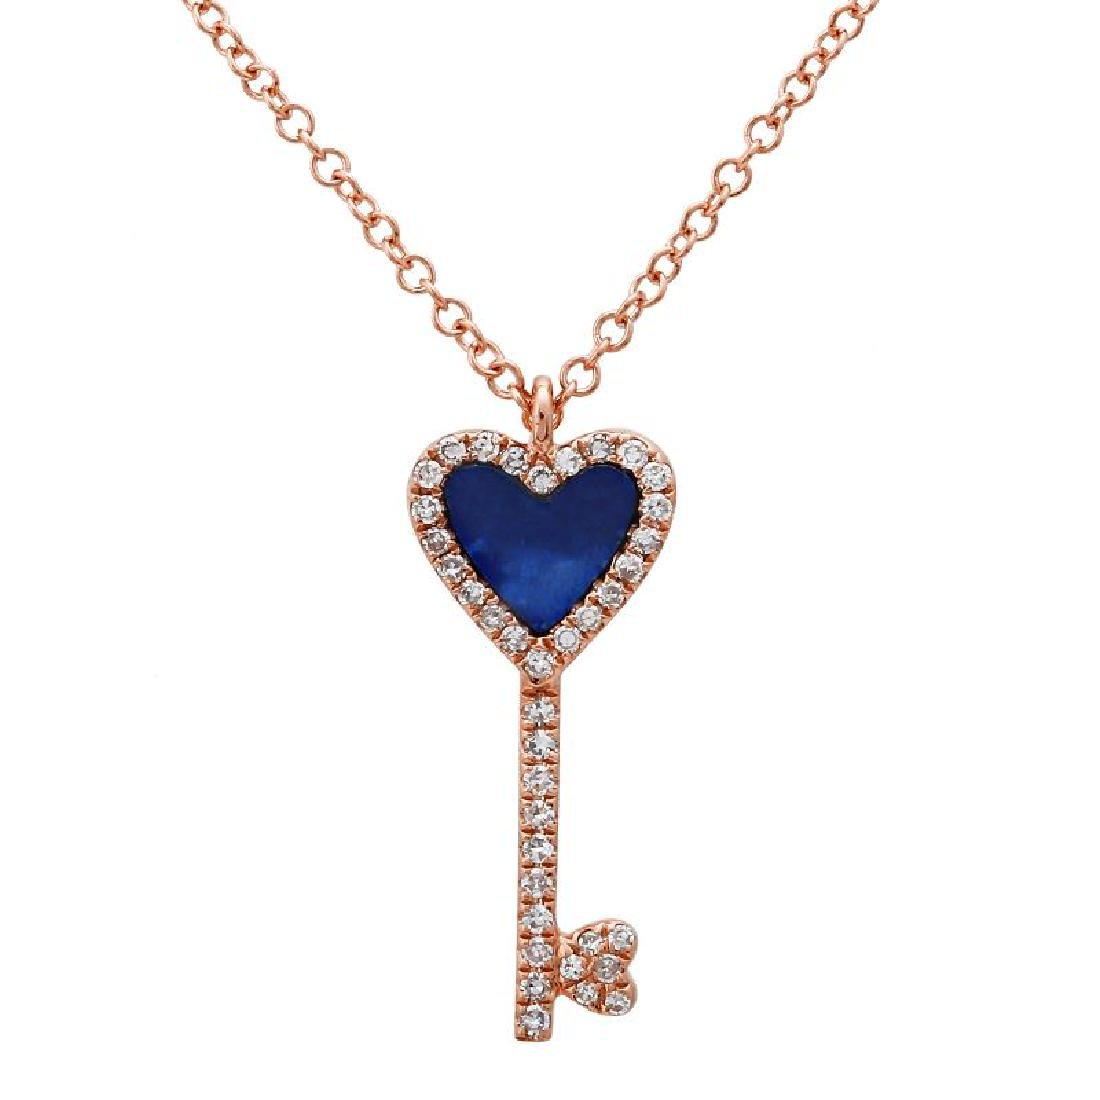 14KT Rose Gold Gemstone Pendant With Chain